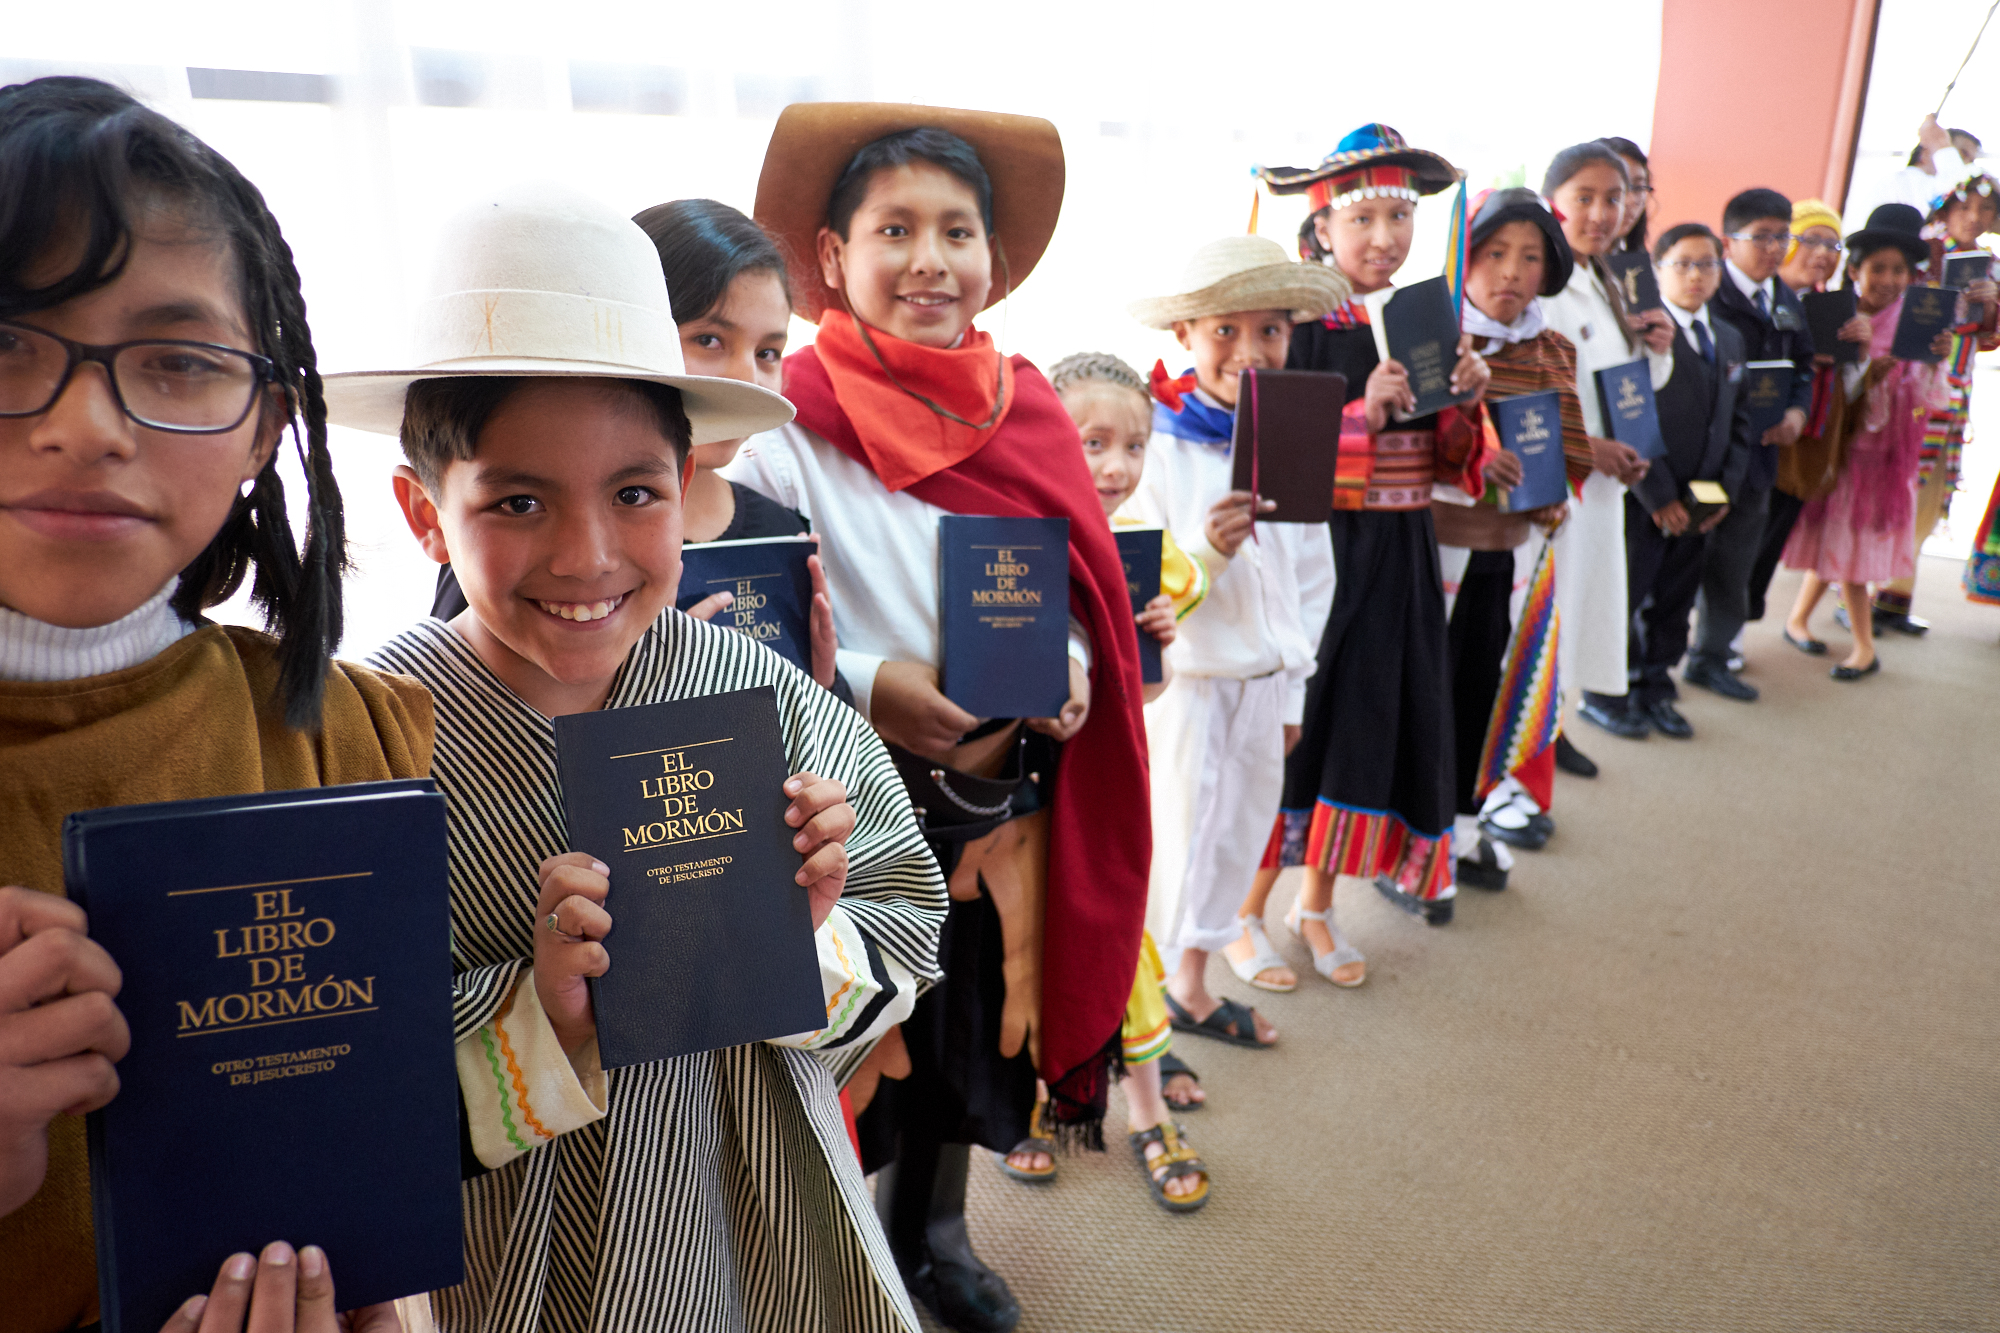 Latter-day Saint children line up in the Polideportivo Heroes de Octobre in El Alto, Bolivia, to show President Russell M. Nelson their copies of the Book of Mormon in Spanish.